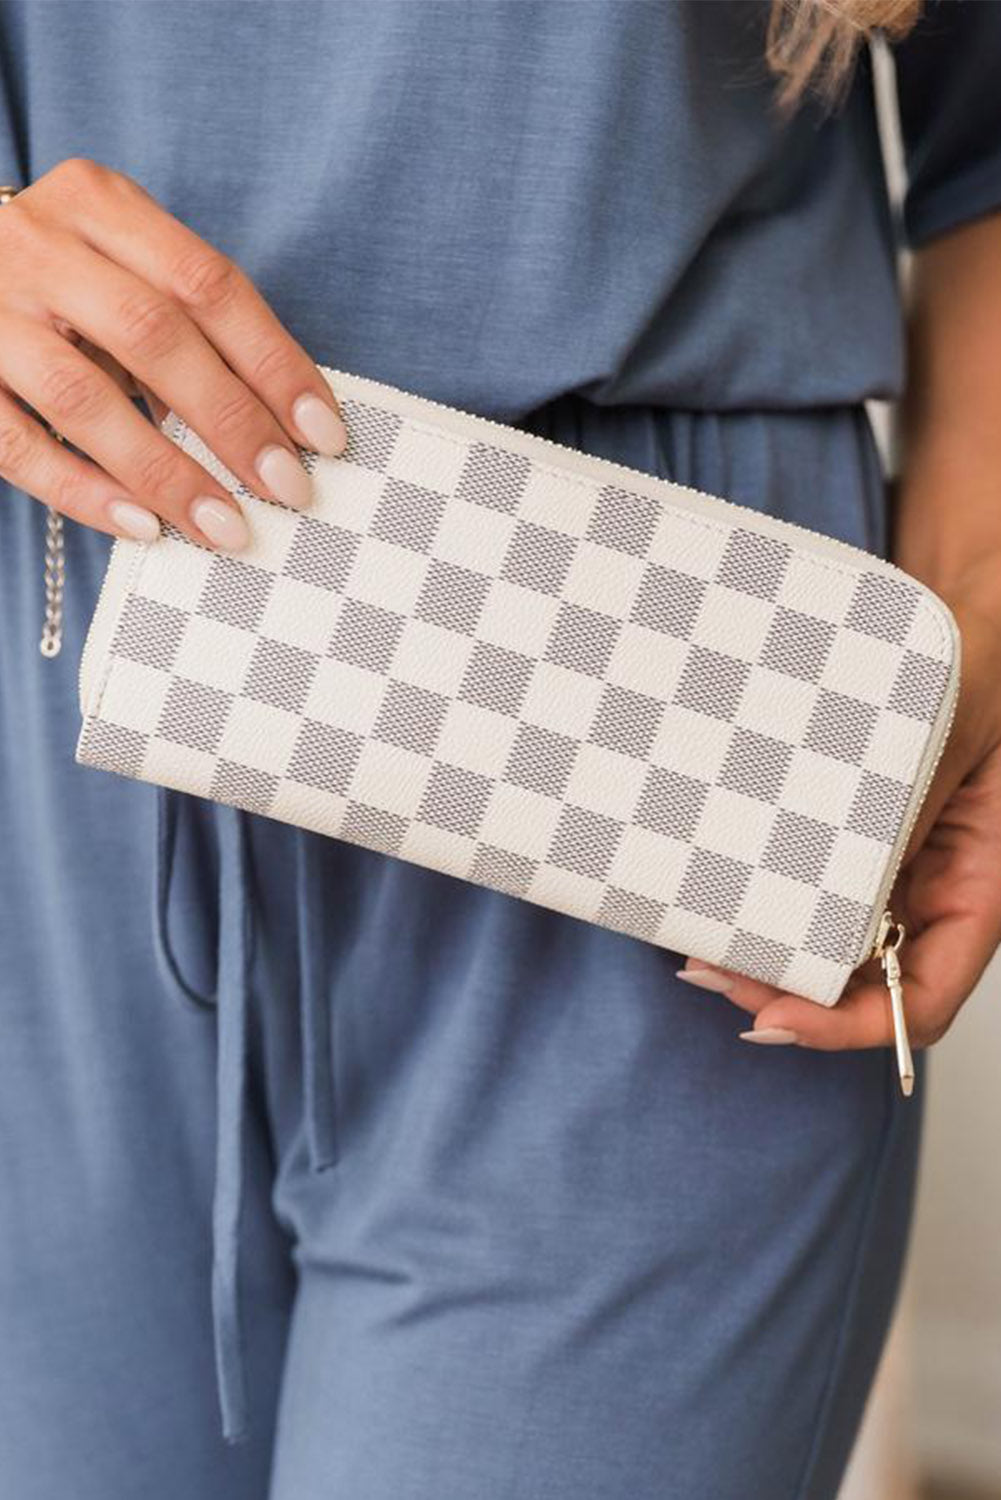 White Timeless Checkered Faux Leather Wallet Bags Discount Designer Fashion Clothes Shoes Bags Women Men Kids Children Black Owned Business